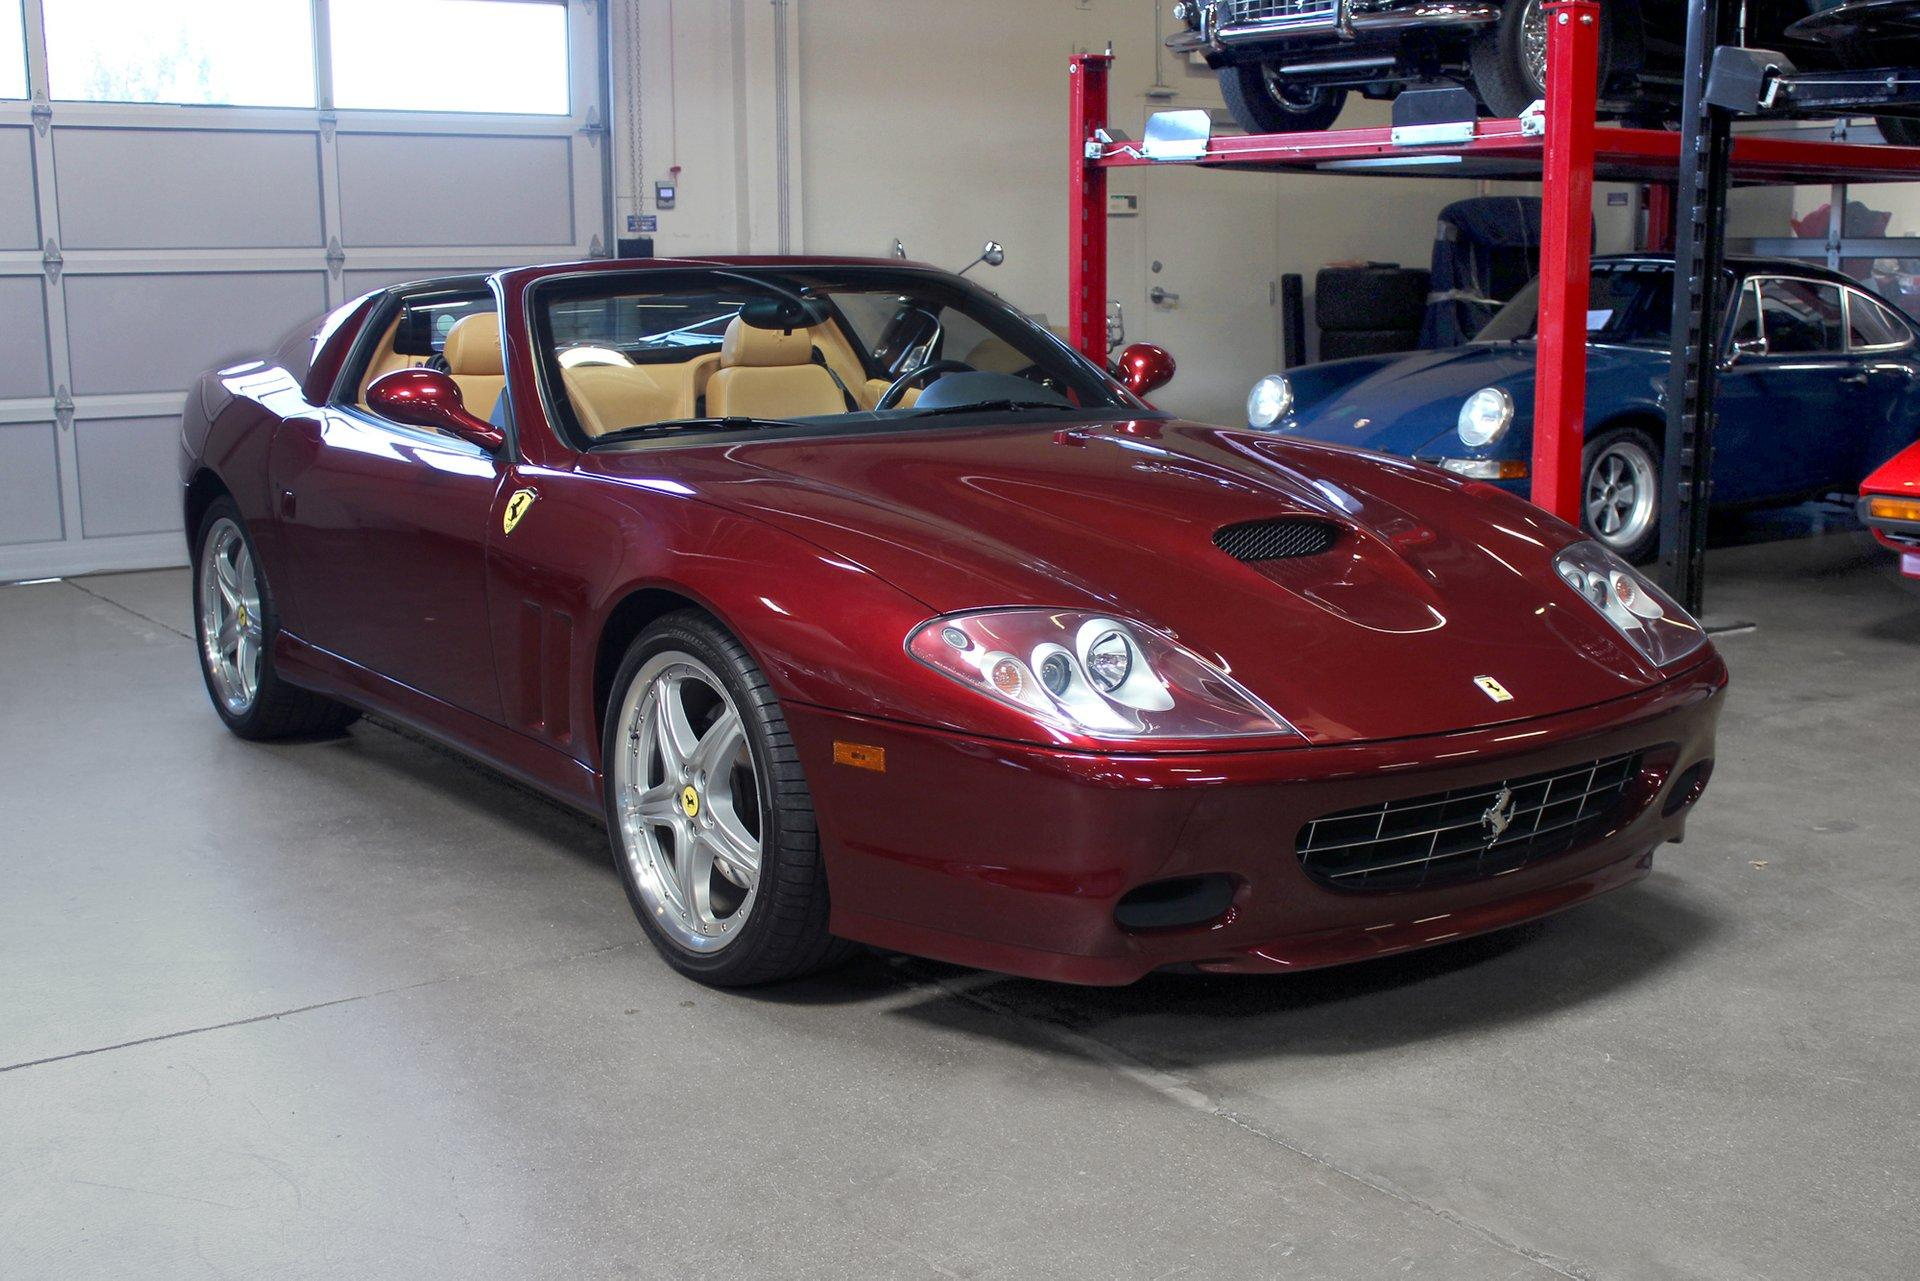 Used 2005 Ferrari Superamerica for sale Sold at San Francisco Sports Cars in San Carlos CA 94070 1